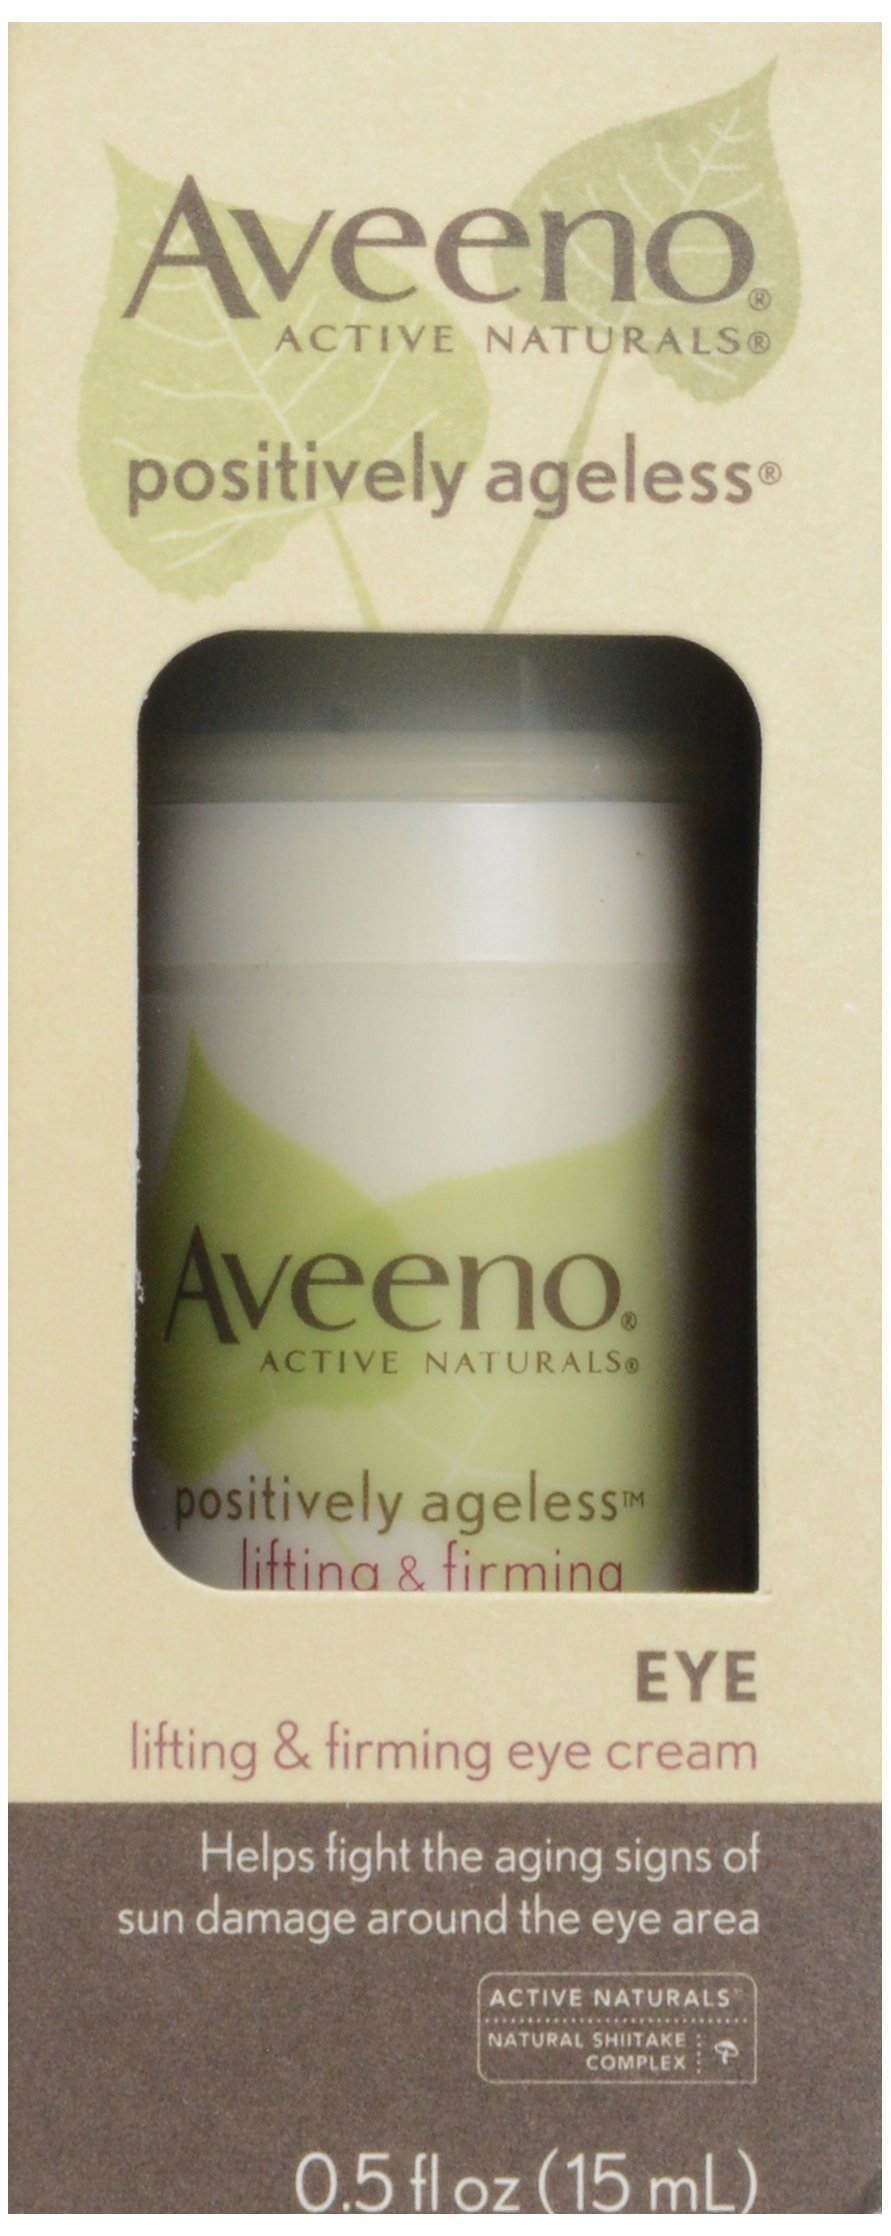 Aveeno, Facial Moisturizers Positively Ageless Lifting Firming Eye Cream, 0.5 oz